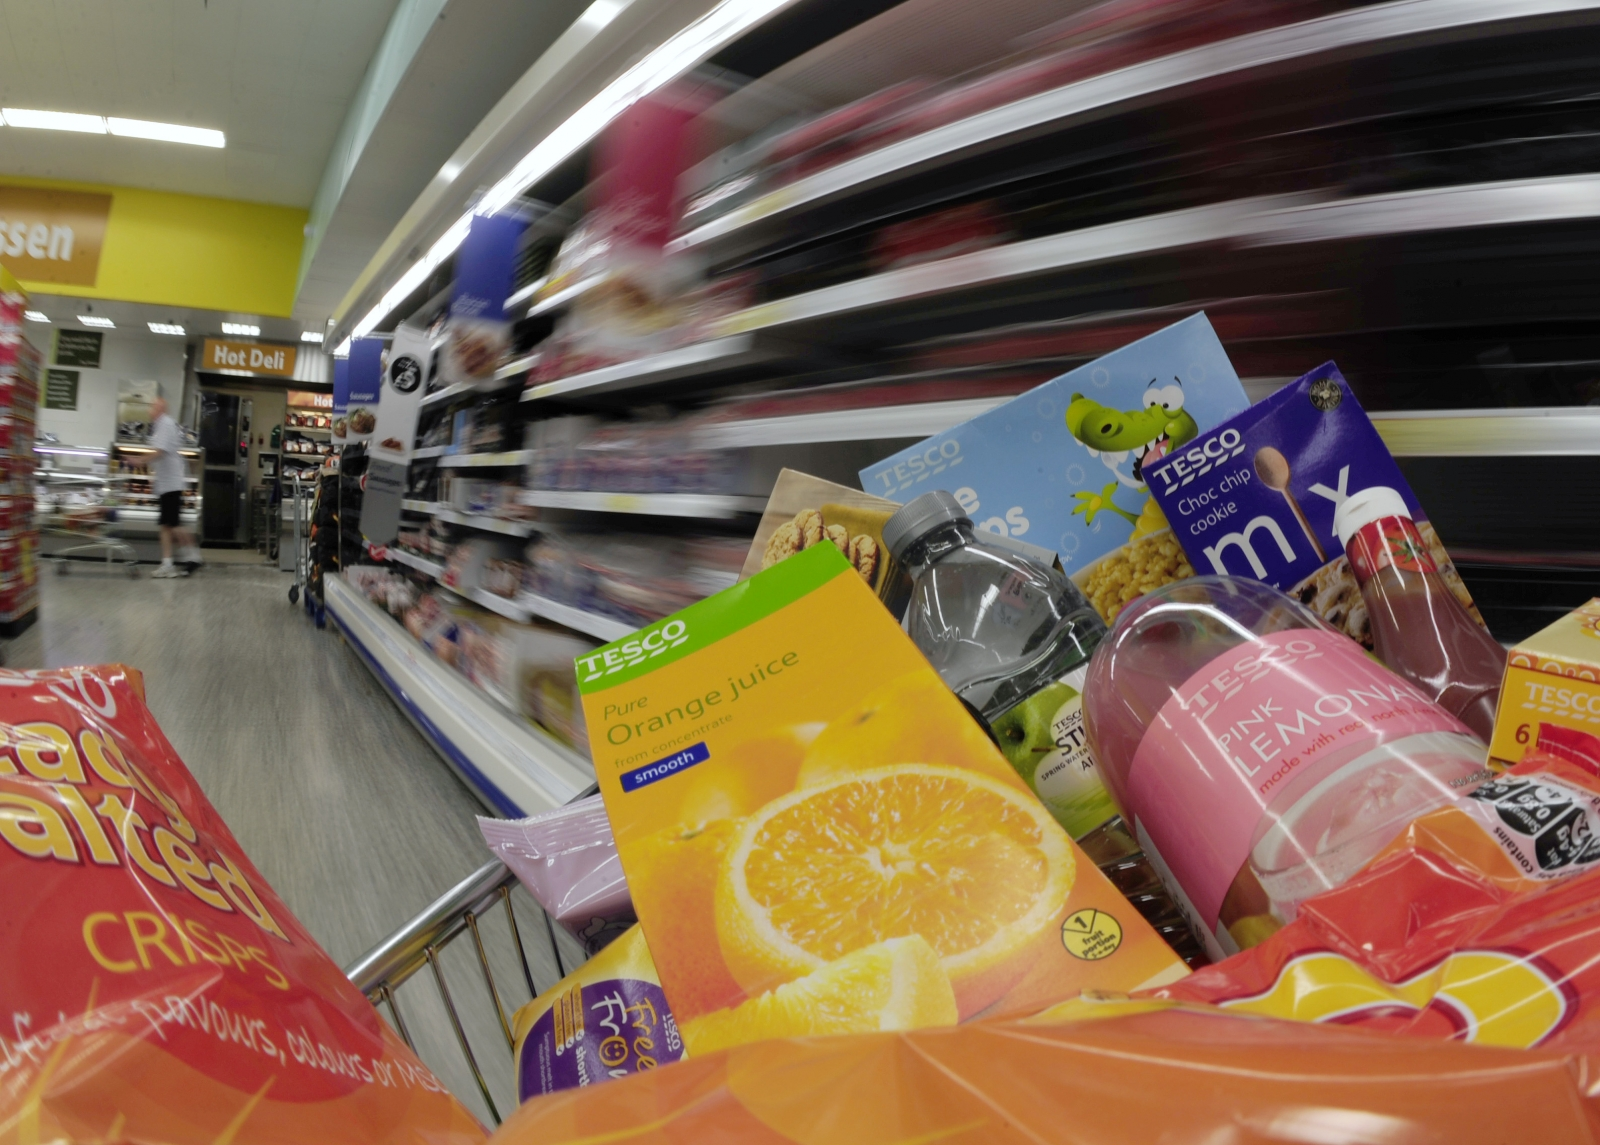 trolley of goods are pictured at Tesco's in Leeds, northern England,June 25, 2010.